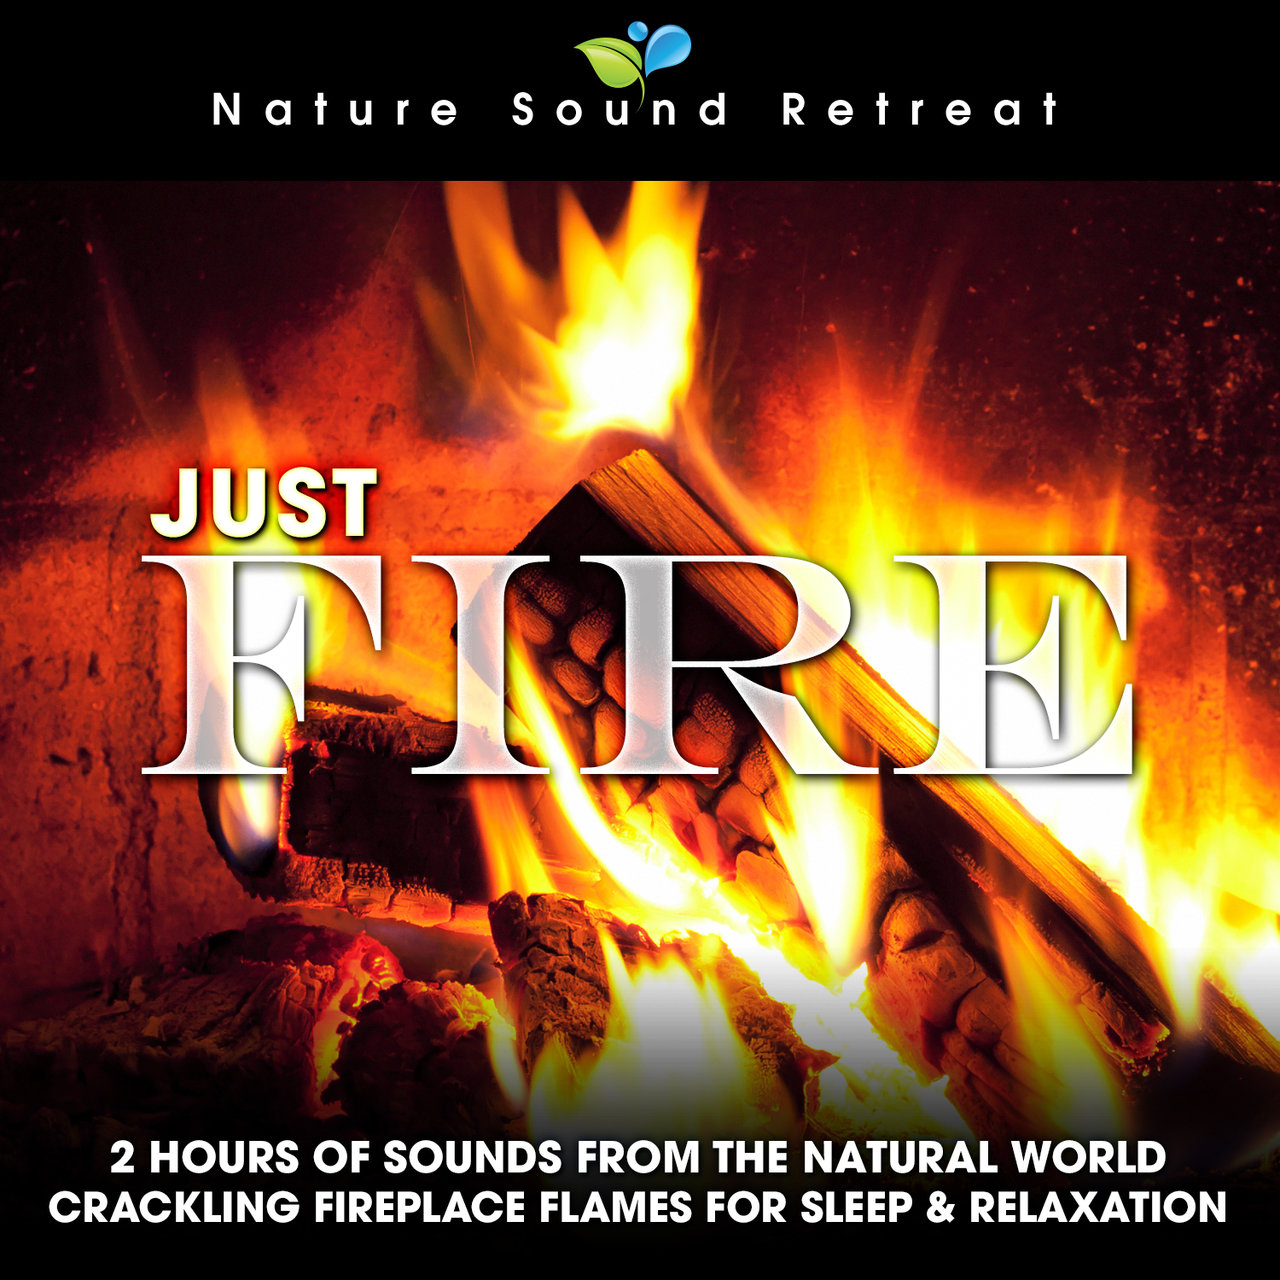 Fireplace Sounds Listen To Just Fire 2 Hours Of Sounds From The Natural World